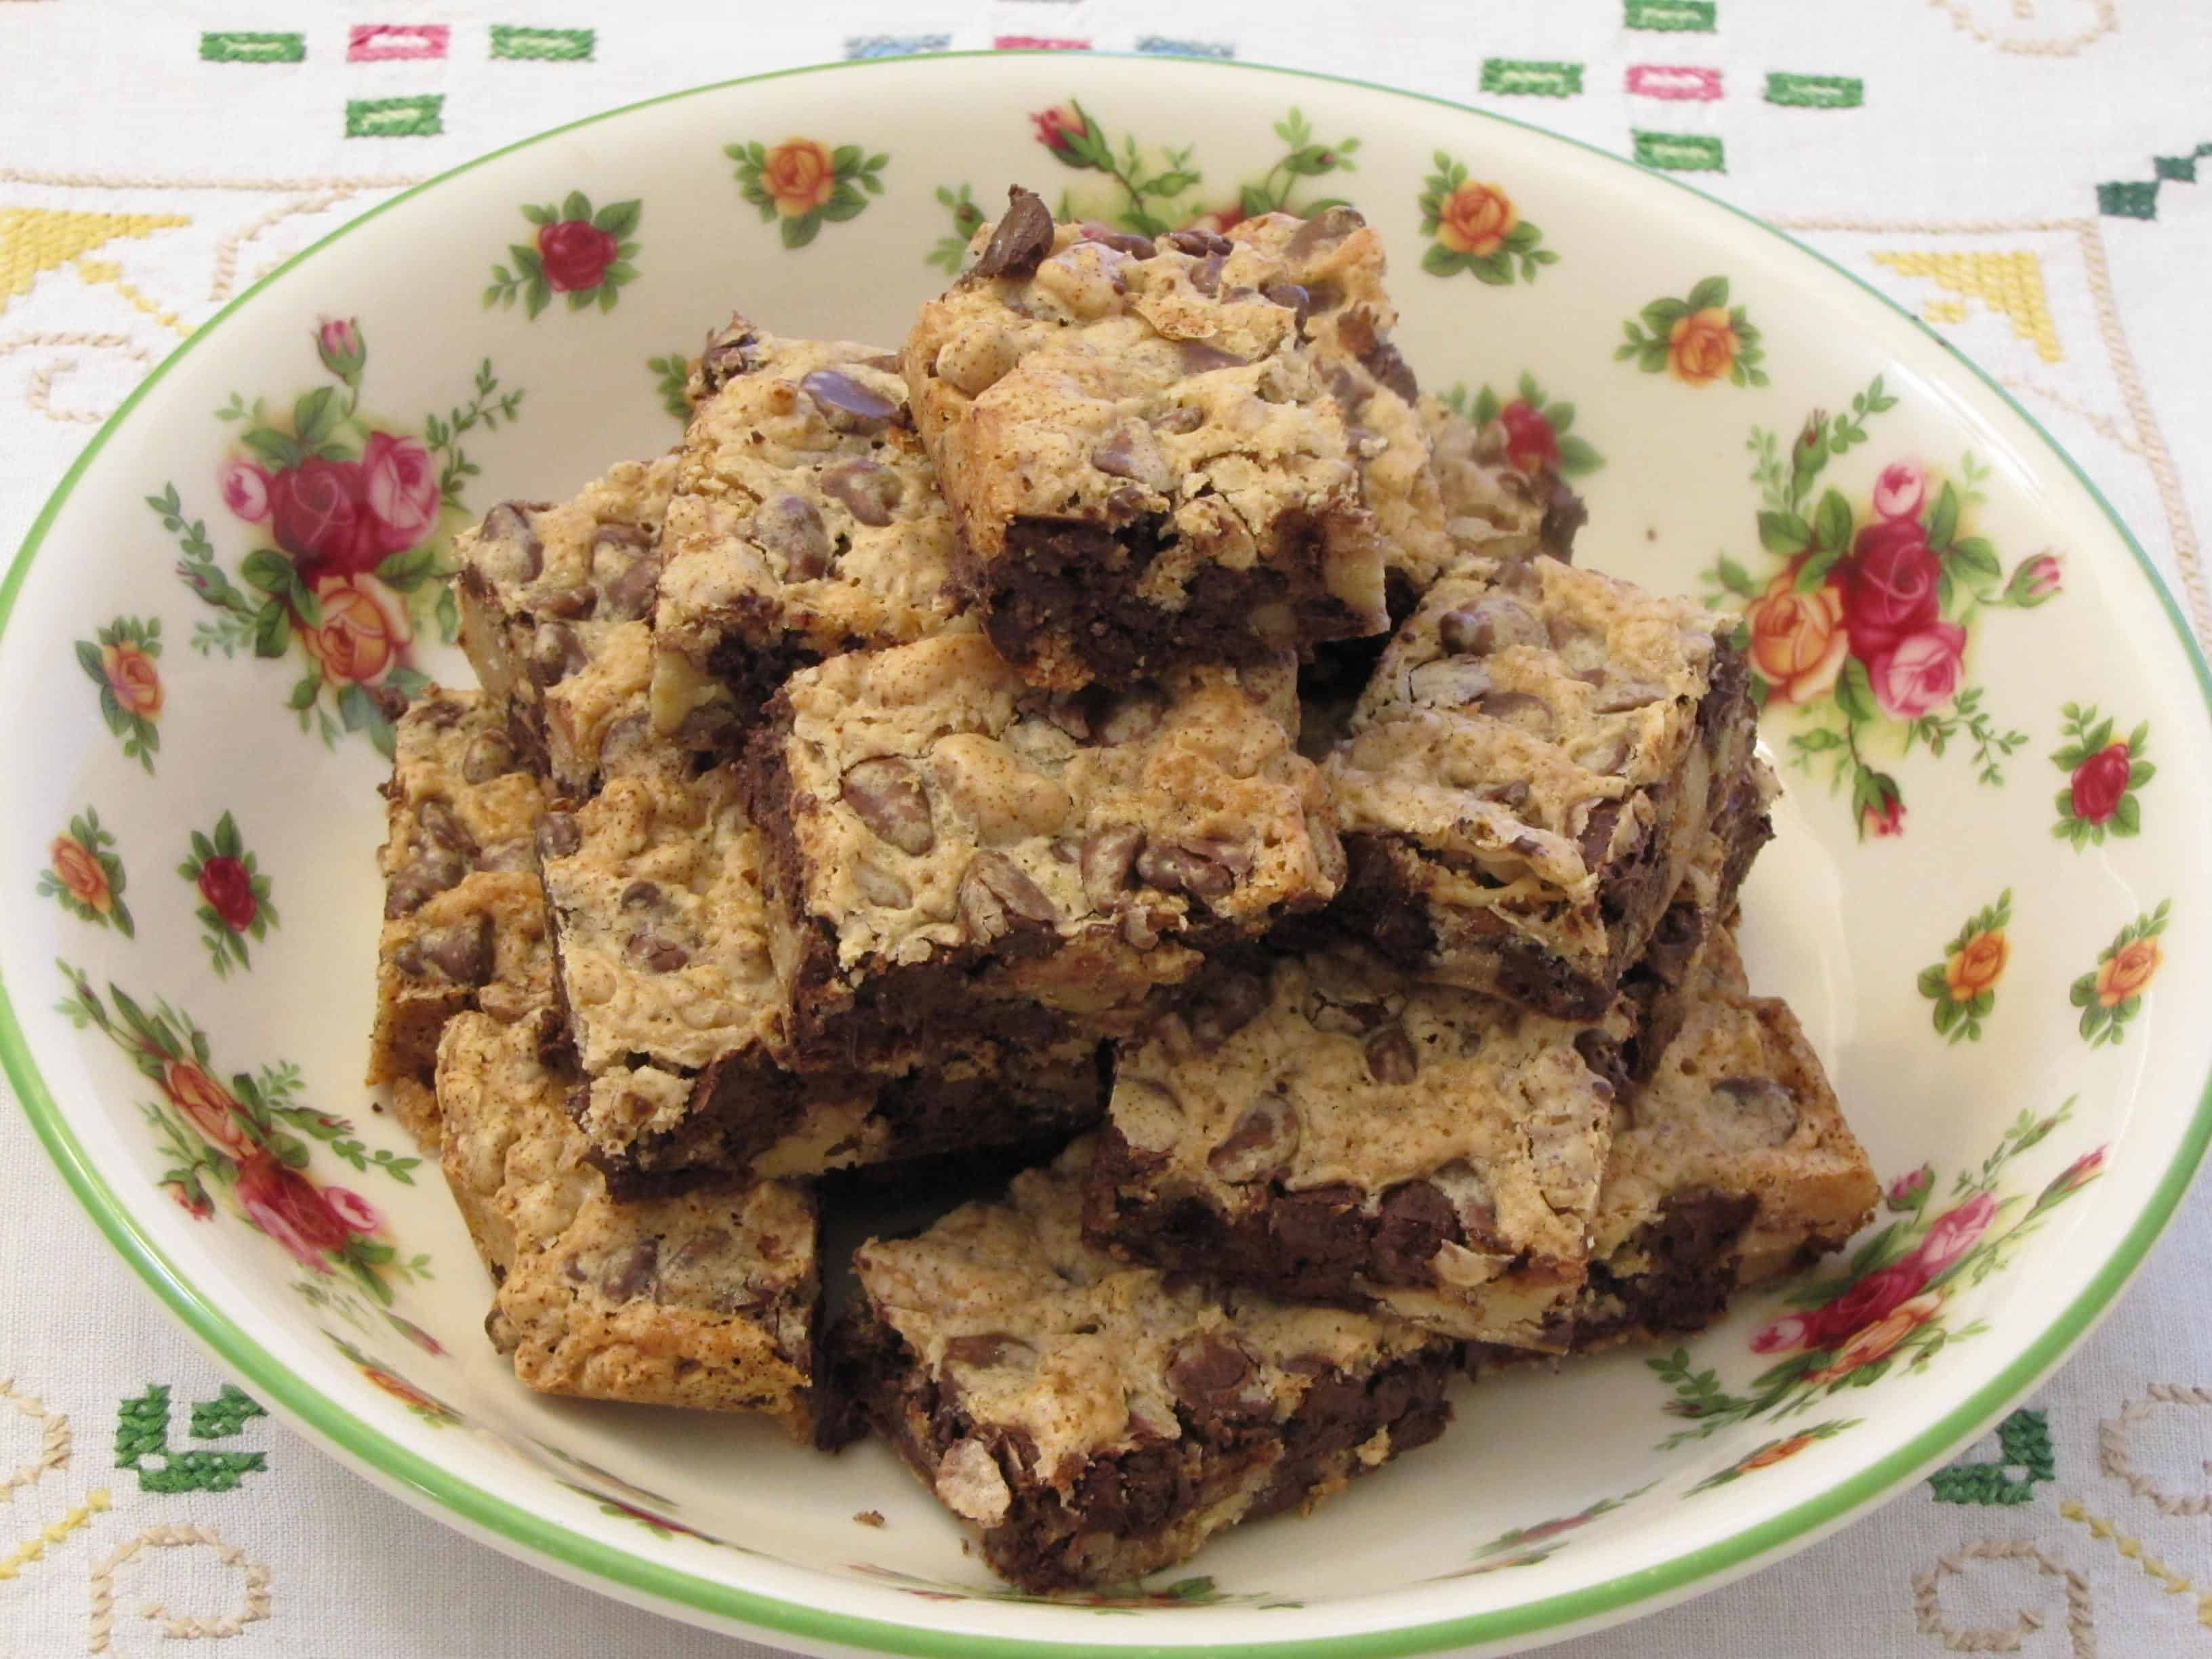 chocolate chip cookie and grandparents house This was my go-to chocolate chip cookie recipe for years upon years, until i stumbled upon the new york times chocolate chip cookie, which i modified a bit to become my new favorite thick and chewy chocolate chip cookie recipe.